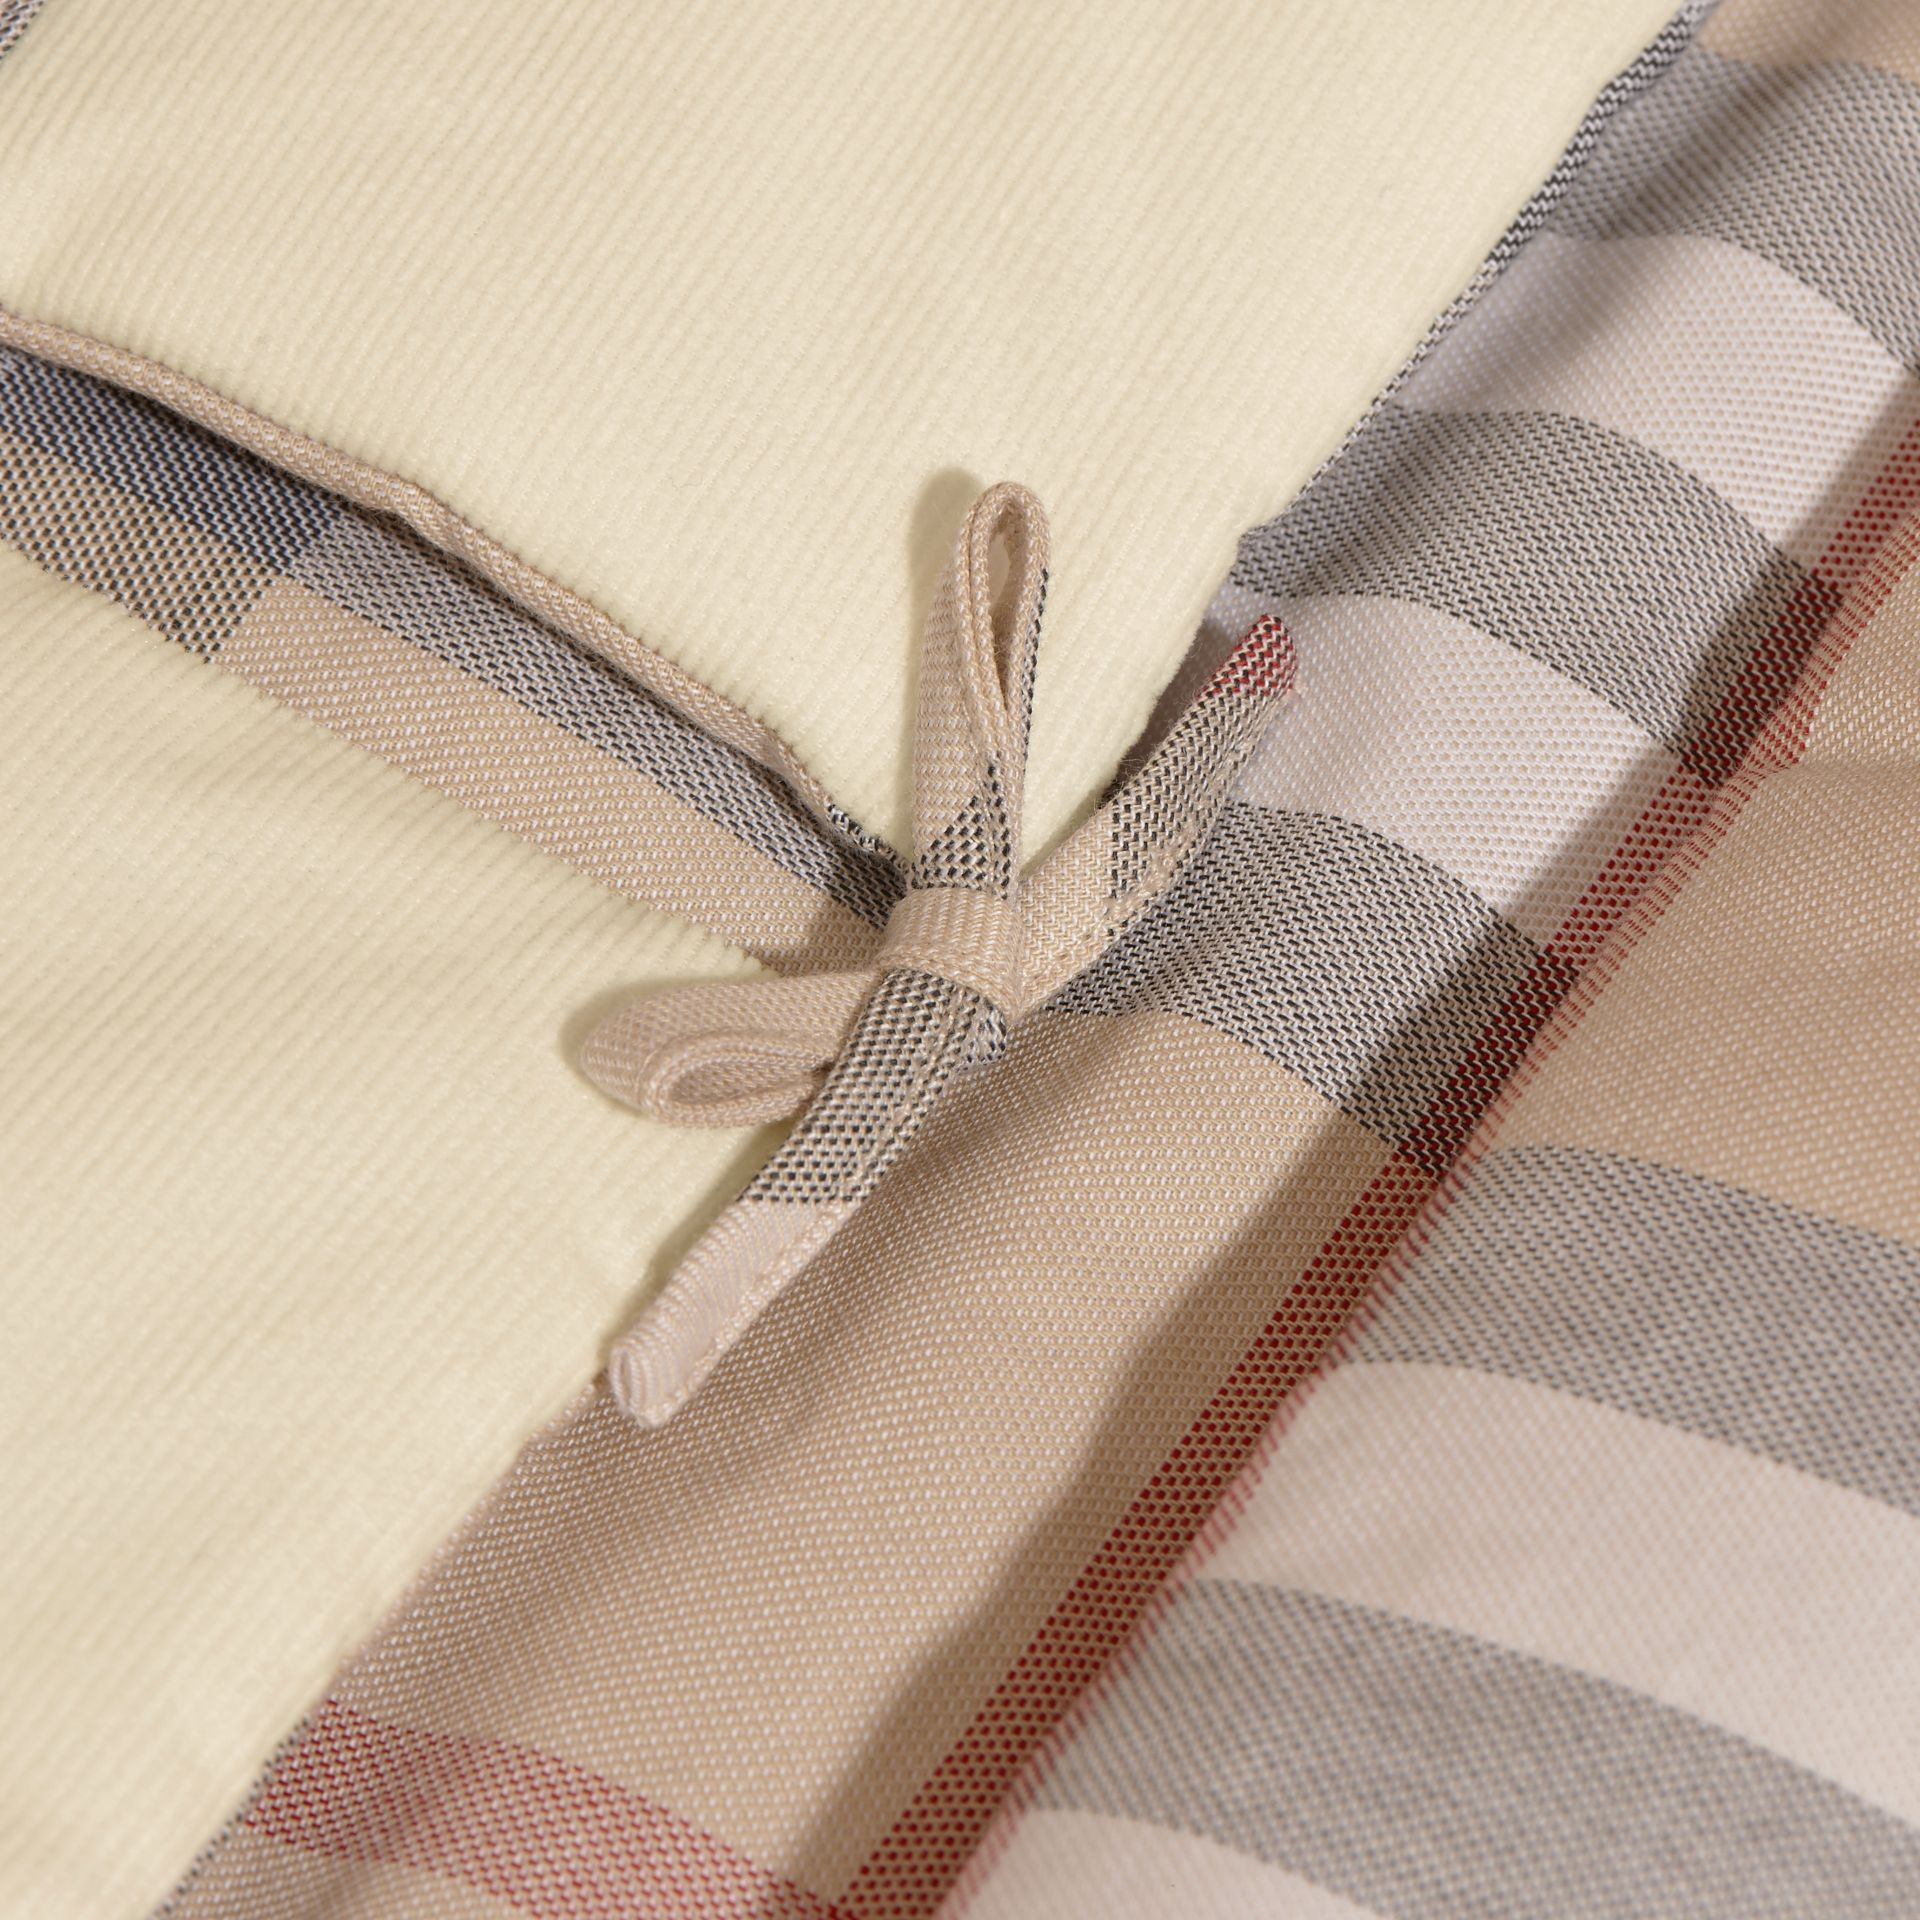 Check-Lined Baby Nest in Off White - Girl | Burberry - gallery image 2